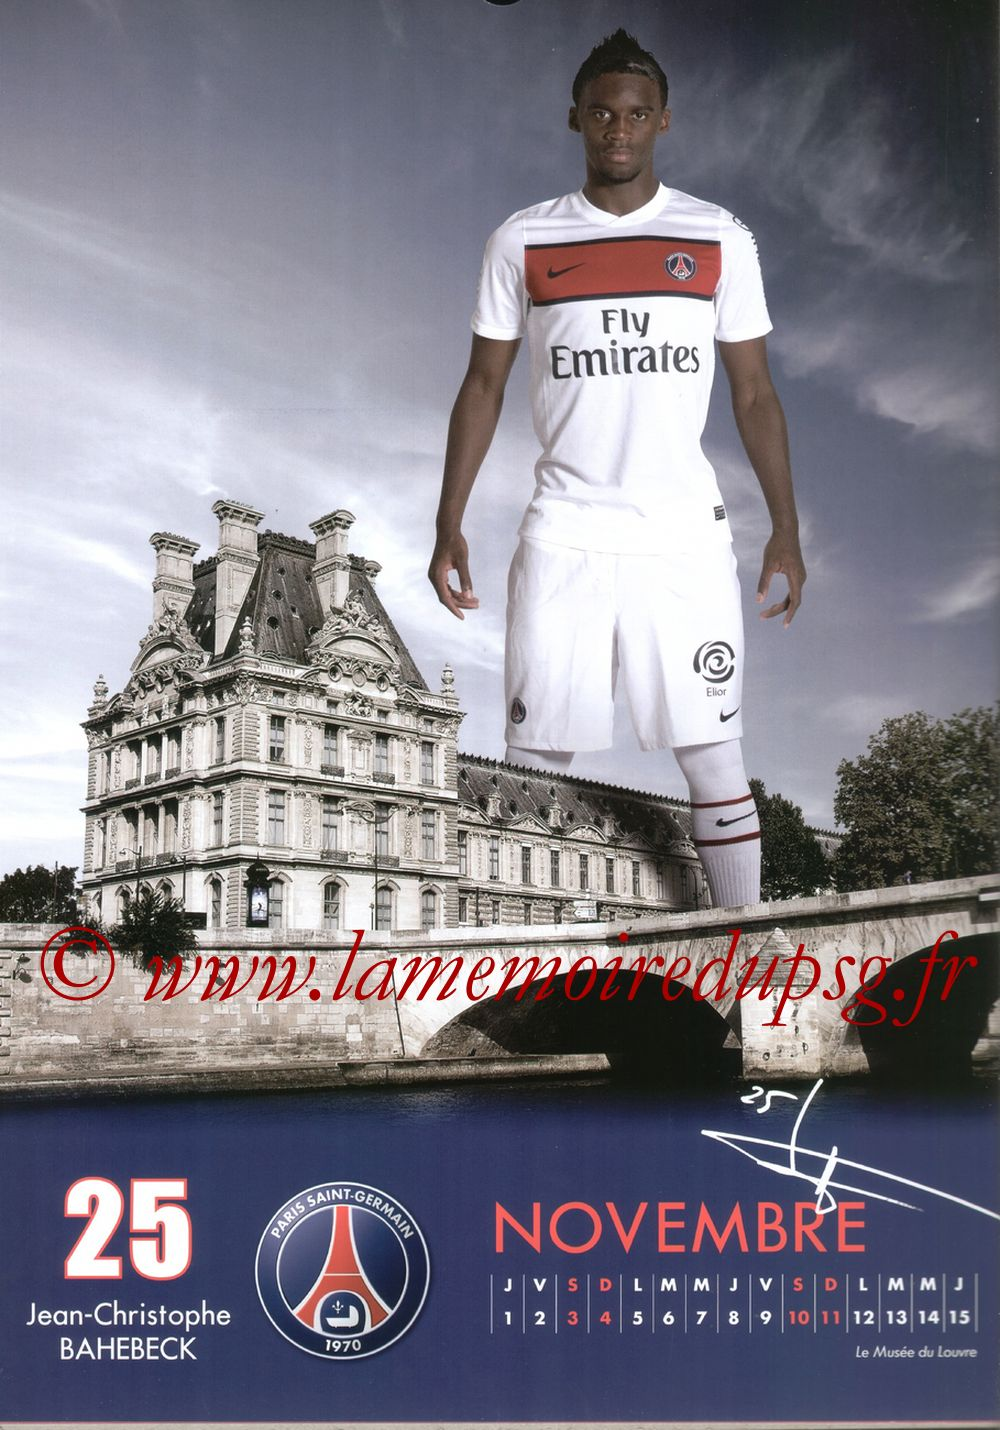 Calendrier PSG 2012 - Page 21 - Jean Christophe BAHEBECK